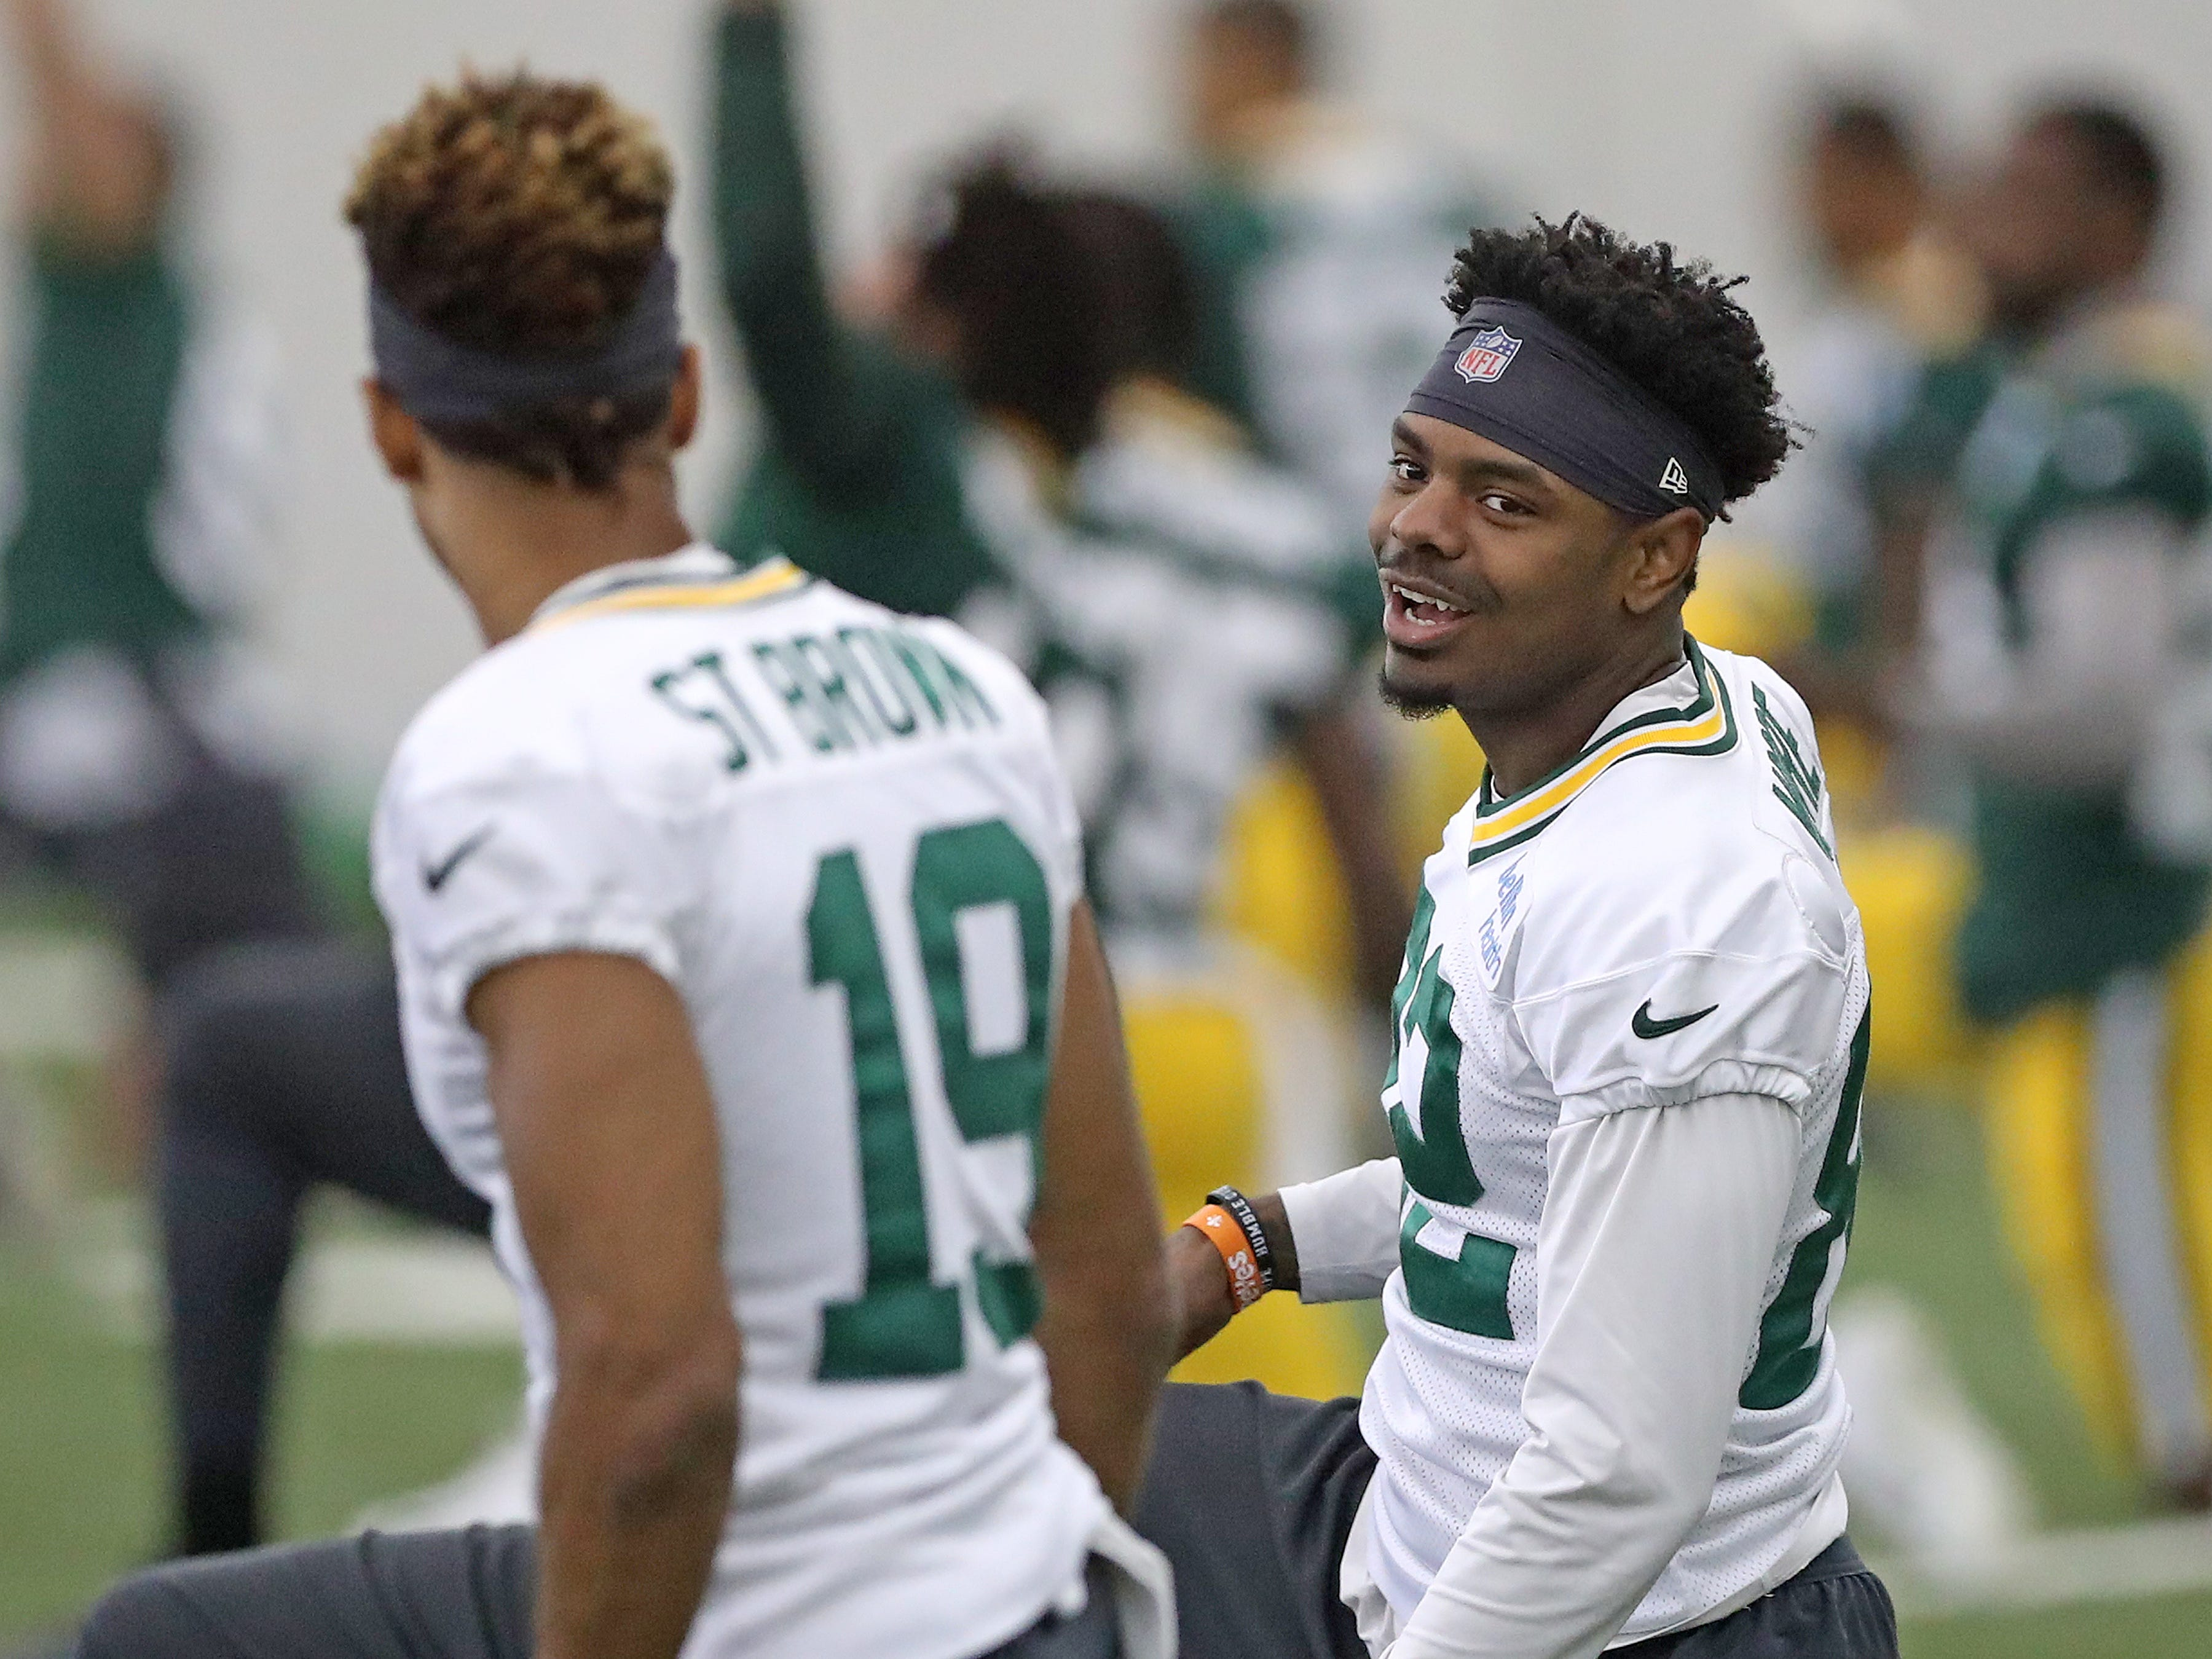 Green Bay Packers wide receiver J'Mon Moore (82) talks with wide receiver Equanimeous St. Brown (19) during practice inside the Hutson Center Thursday,October 11, 2018 in Ashwaubenon, Wis.